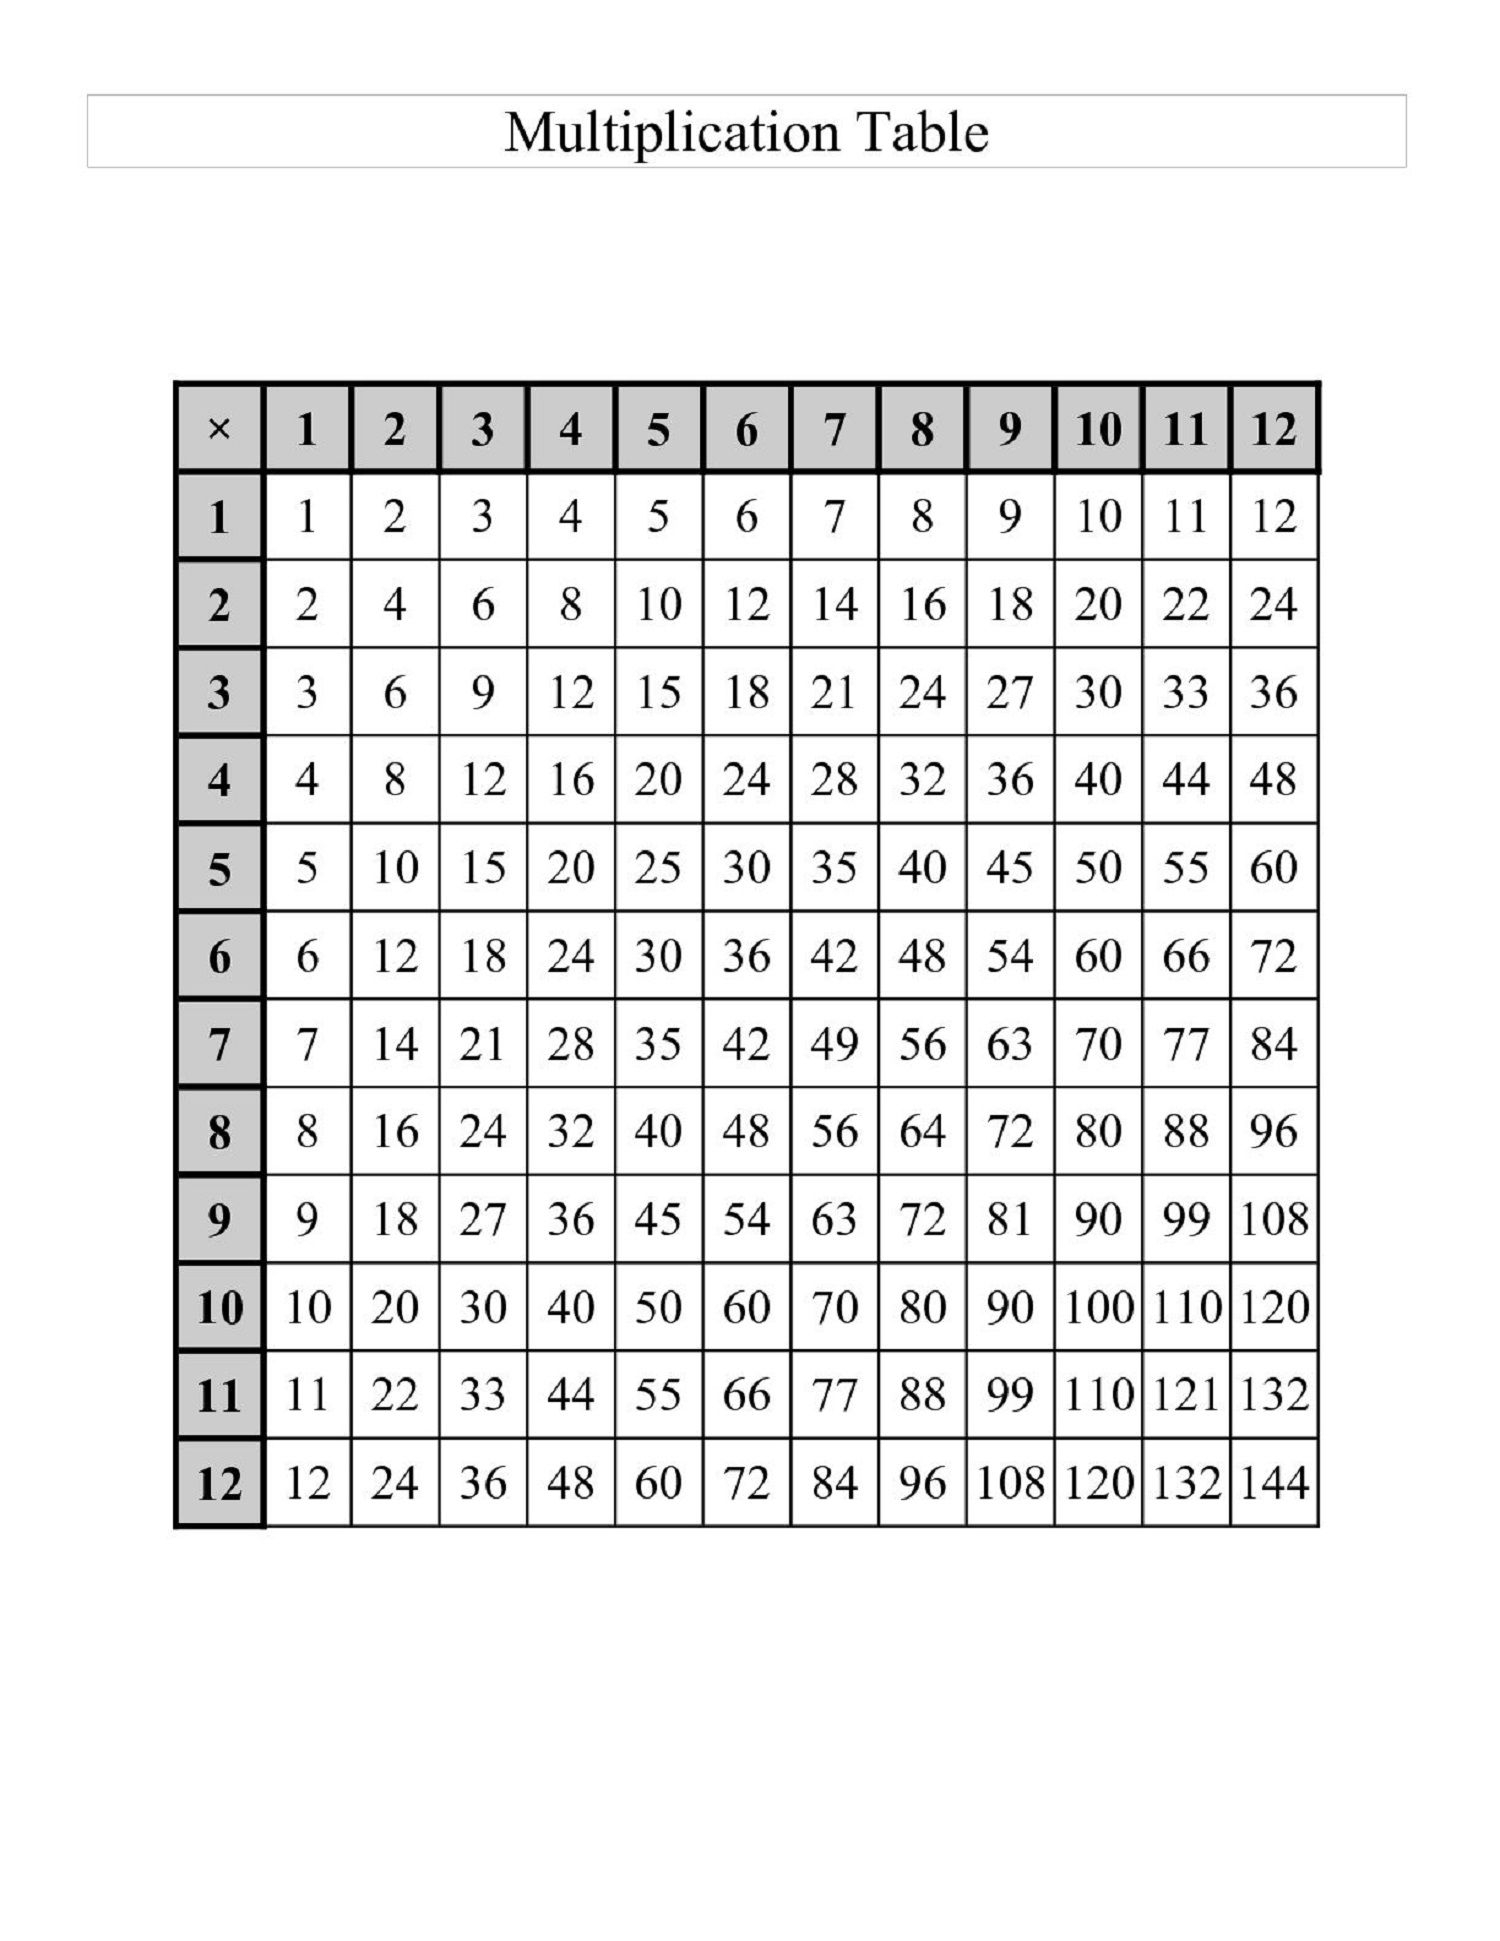 Multiplication Chart For Grade 3 Kids | Multiplication Table